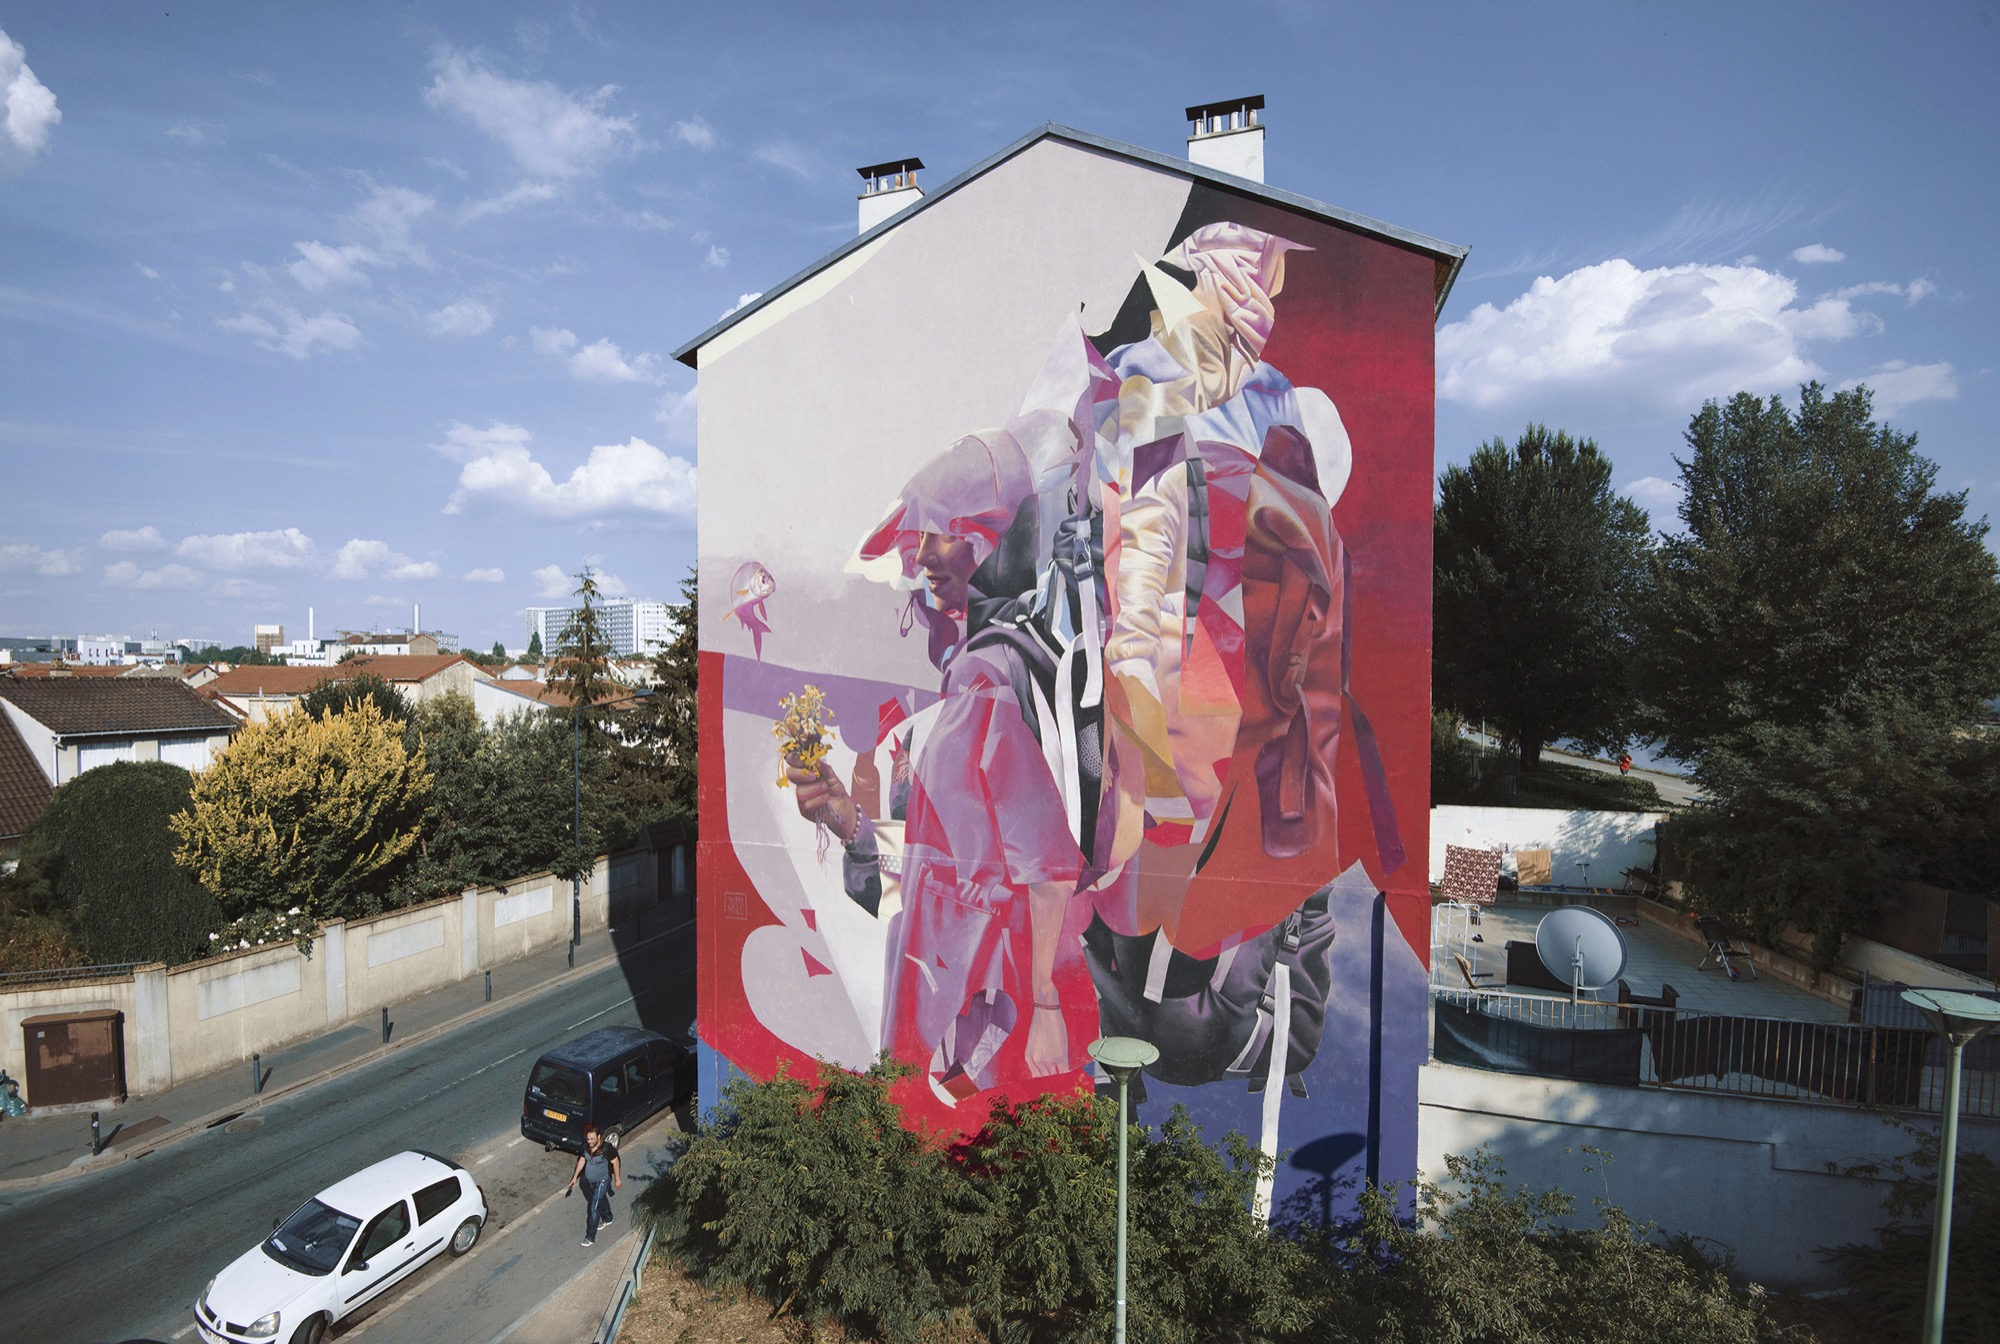 """""""Like giving flowers to a fish"""" by Telmo & Miel in Saint Denis, France Artes & contextos StDenistelmomiel"""